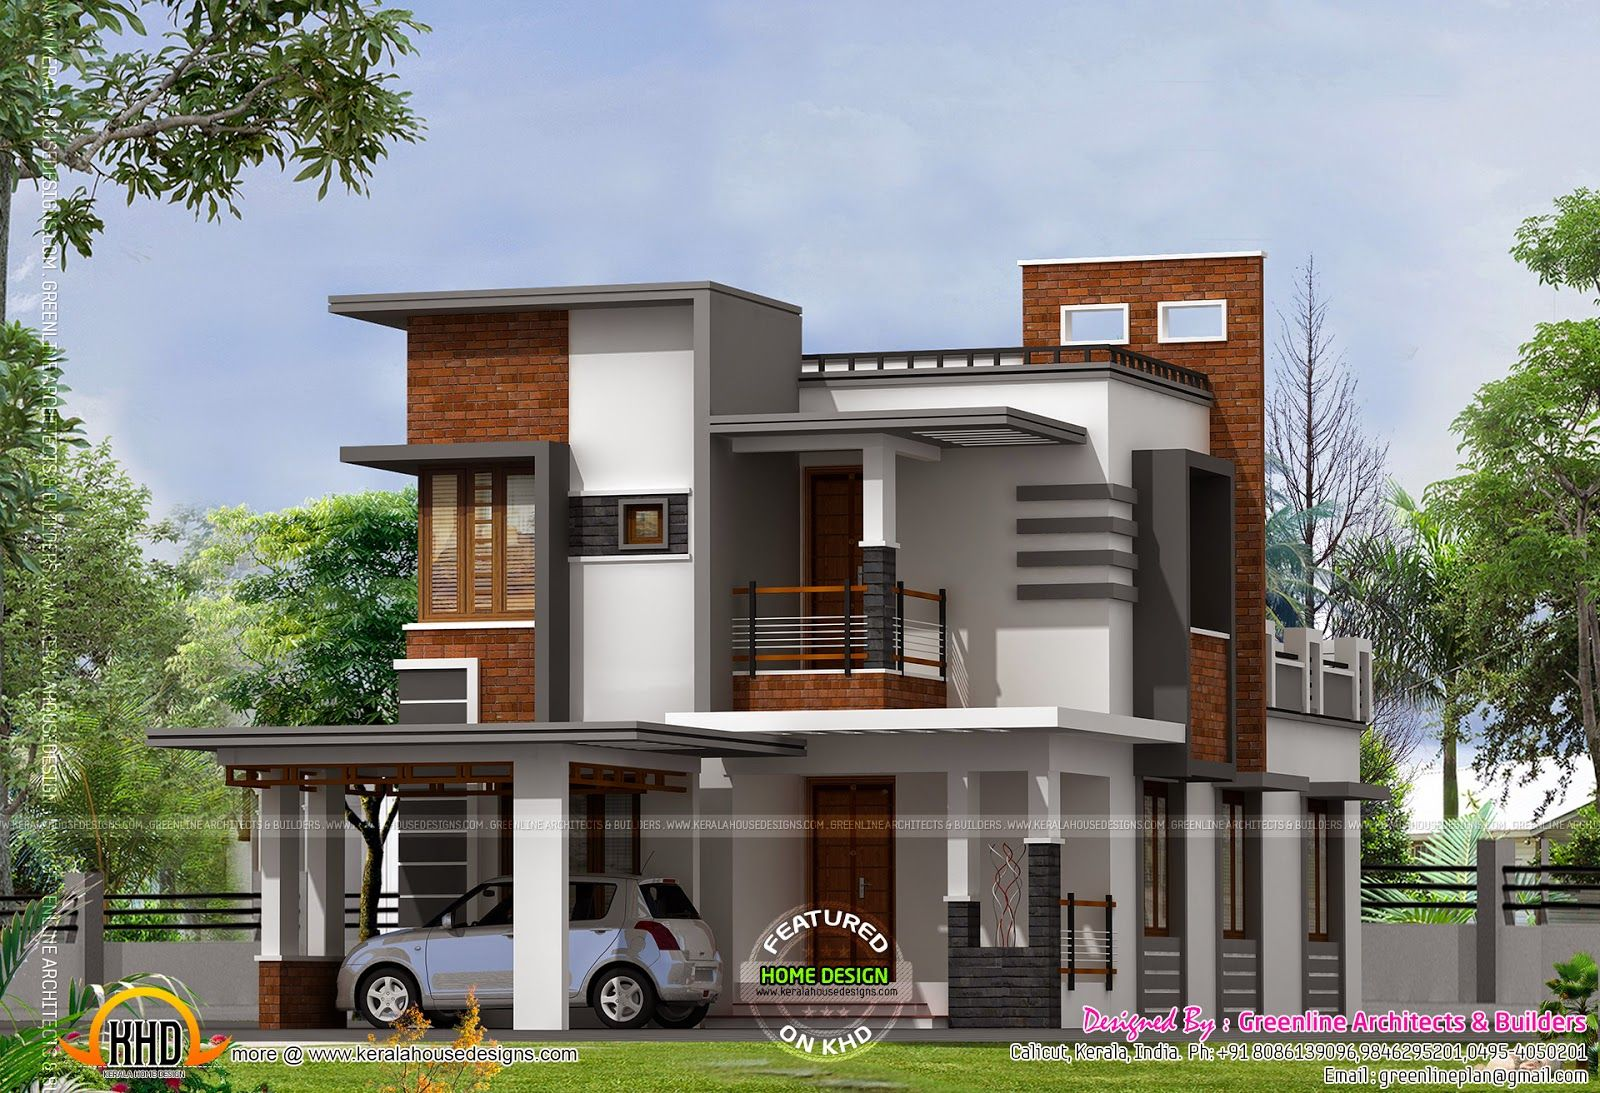 Low cost contemporary house house elevation indian for House designs kerala style low cost